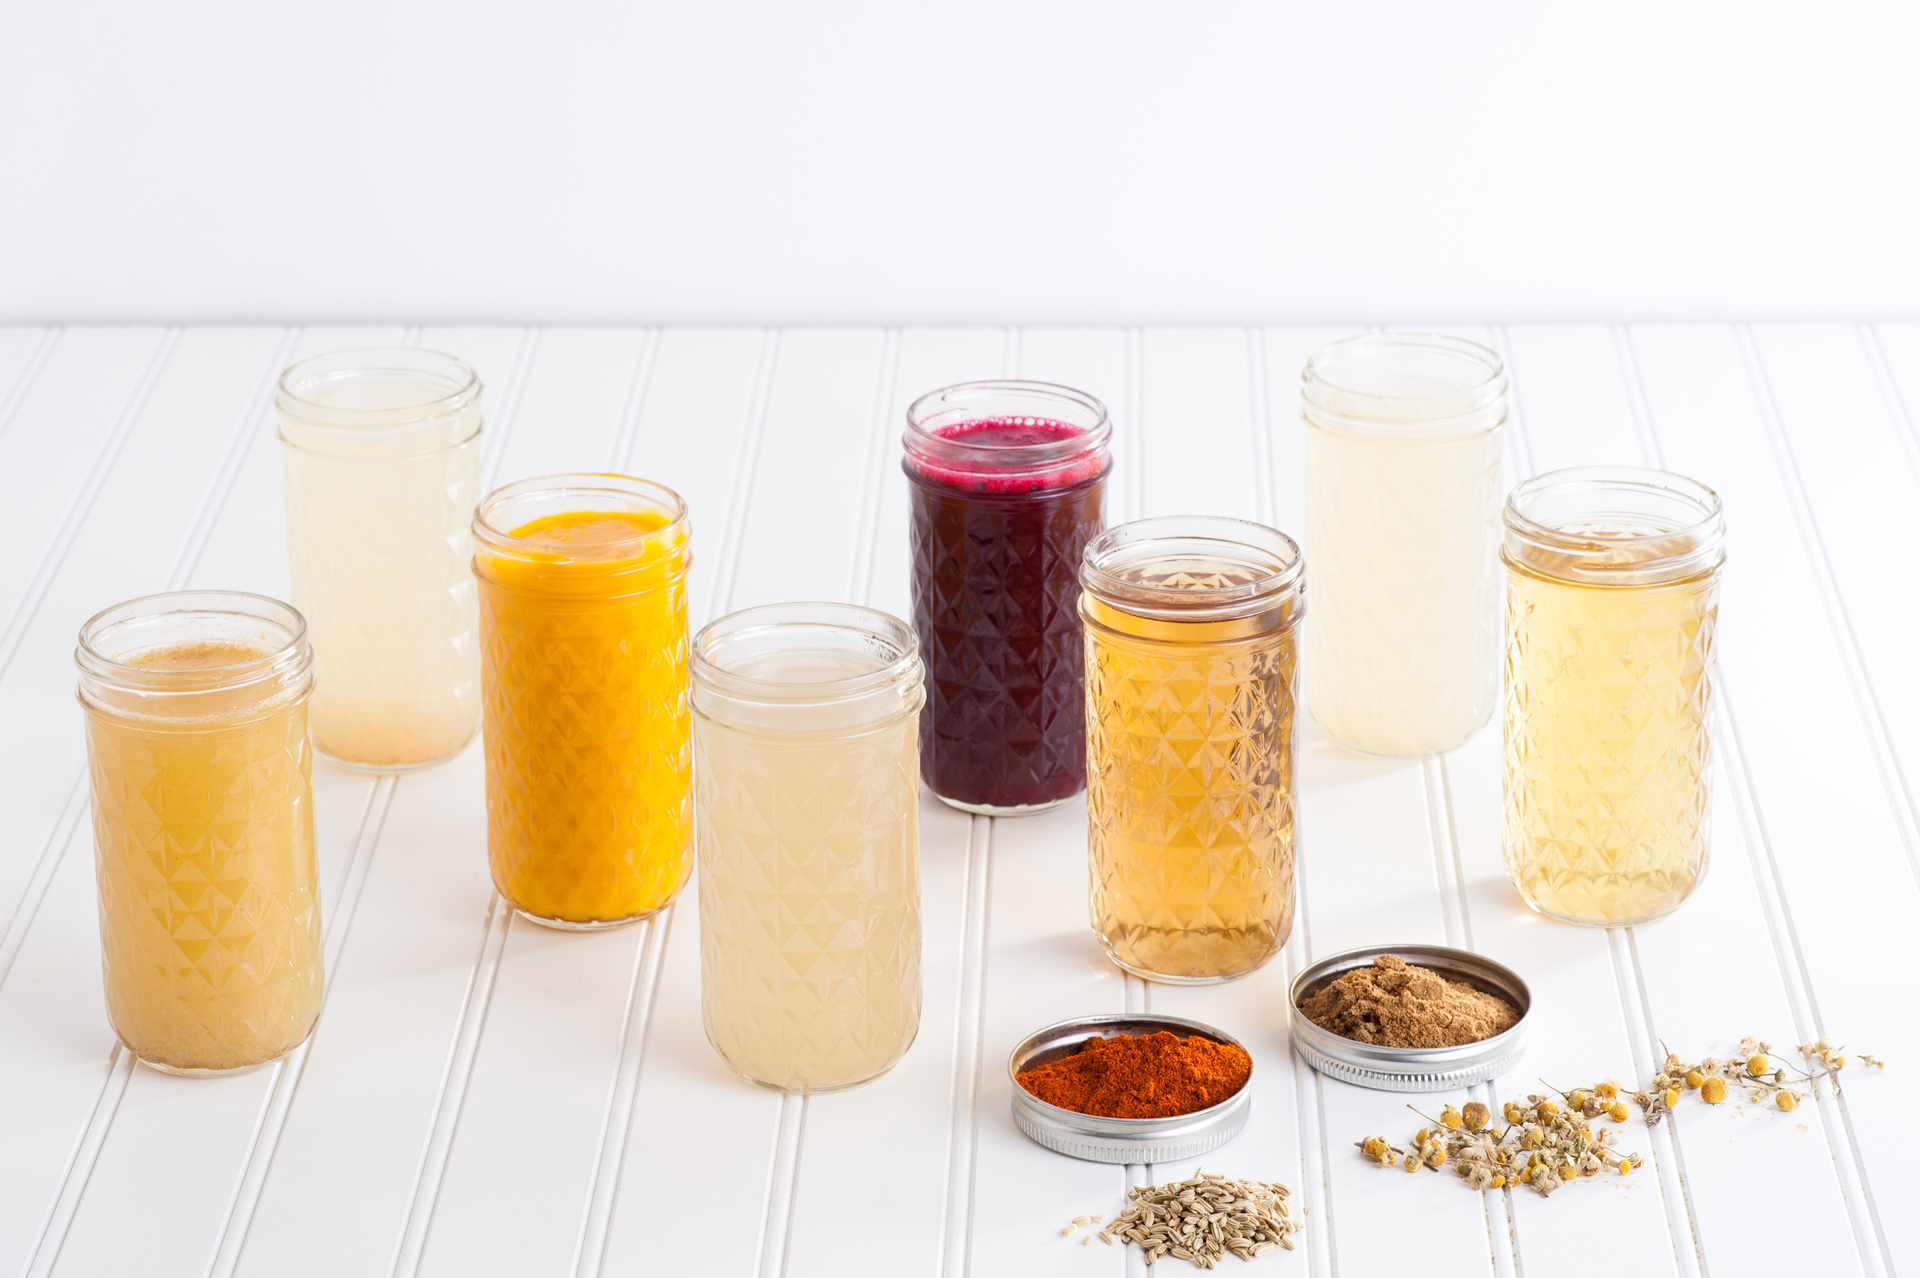 Why do a juice cleanse?